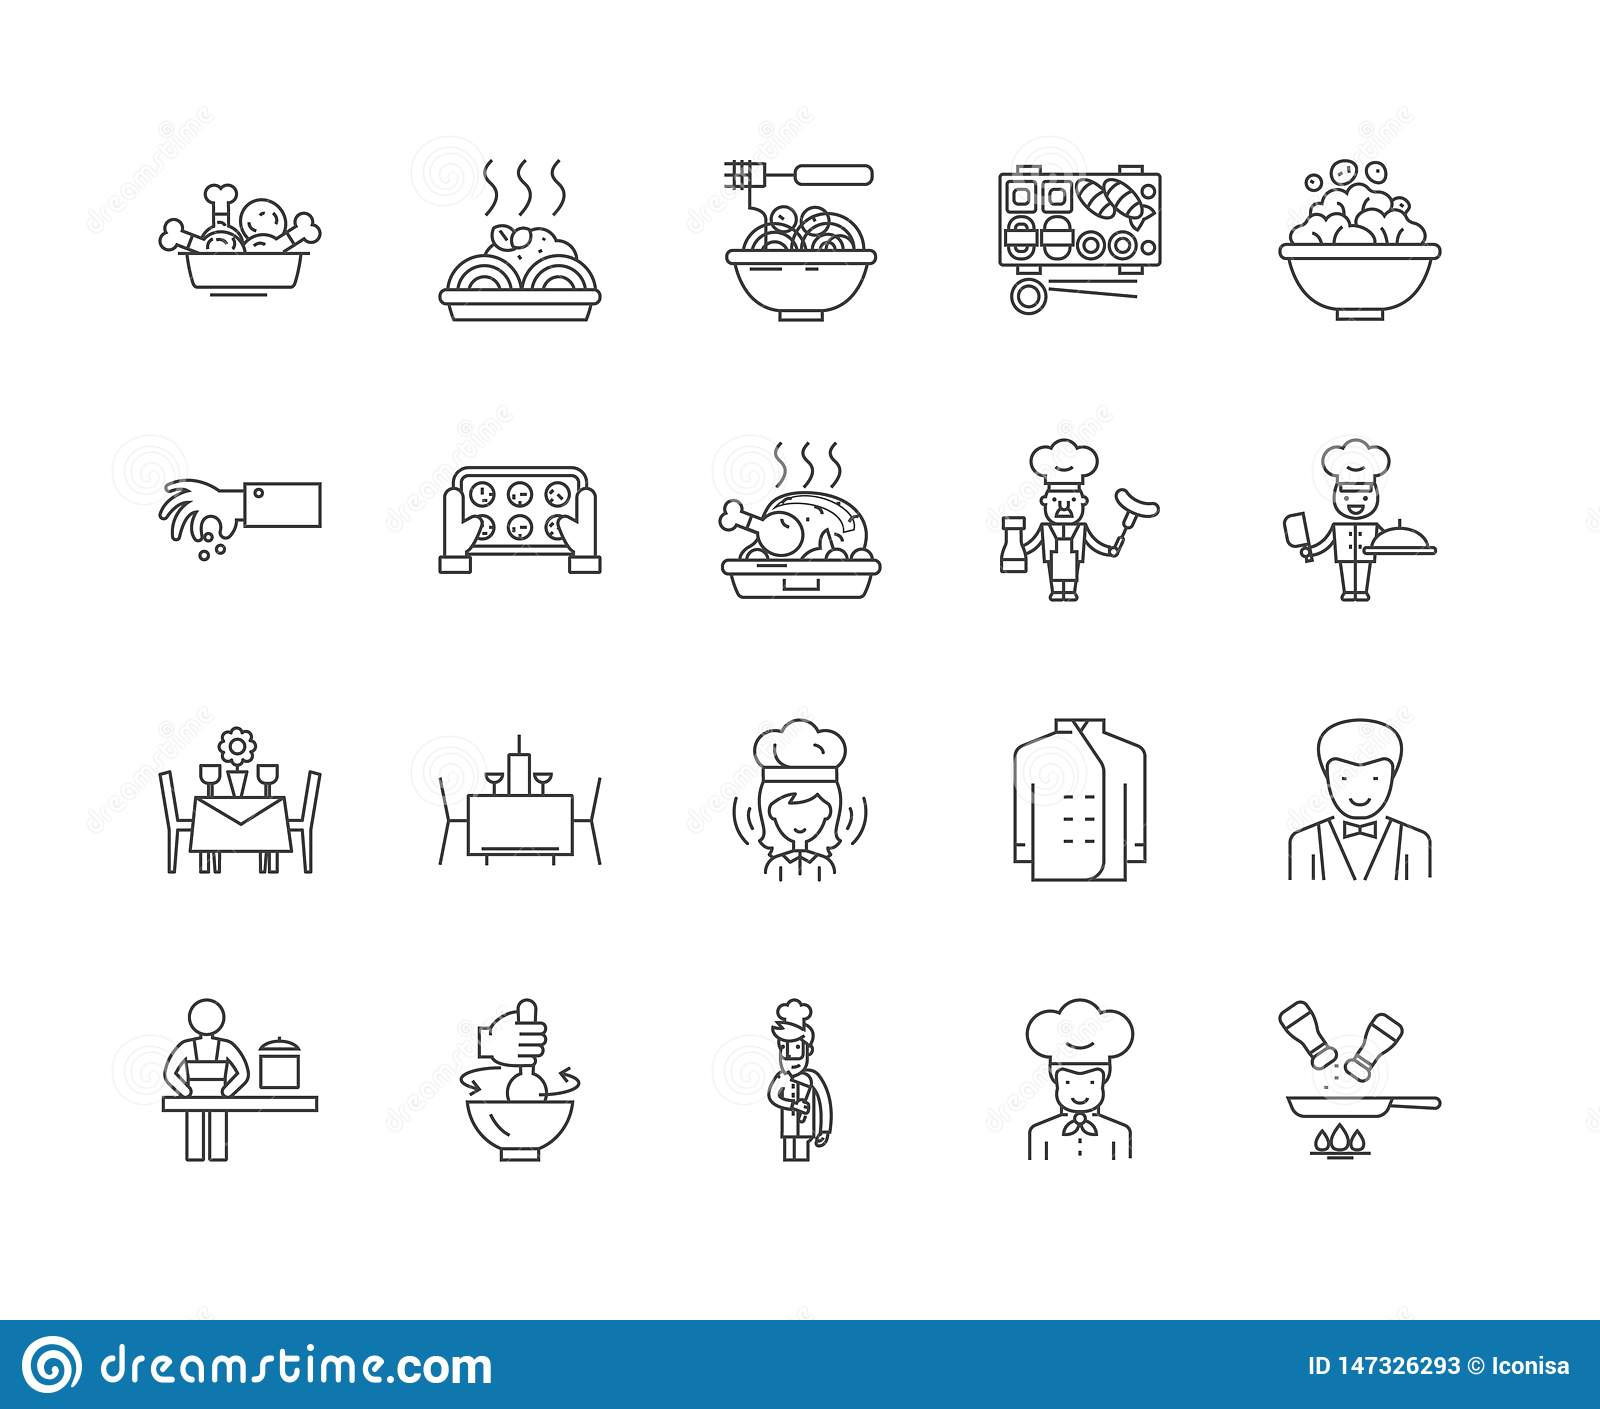 Gourmet line icons, signs, vector set, outline illustration concept